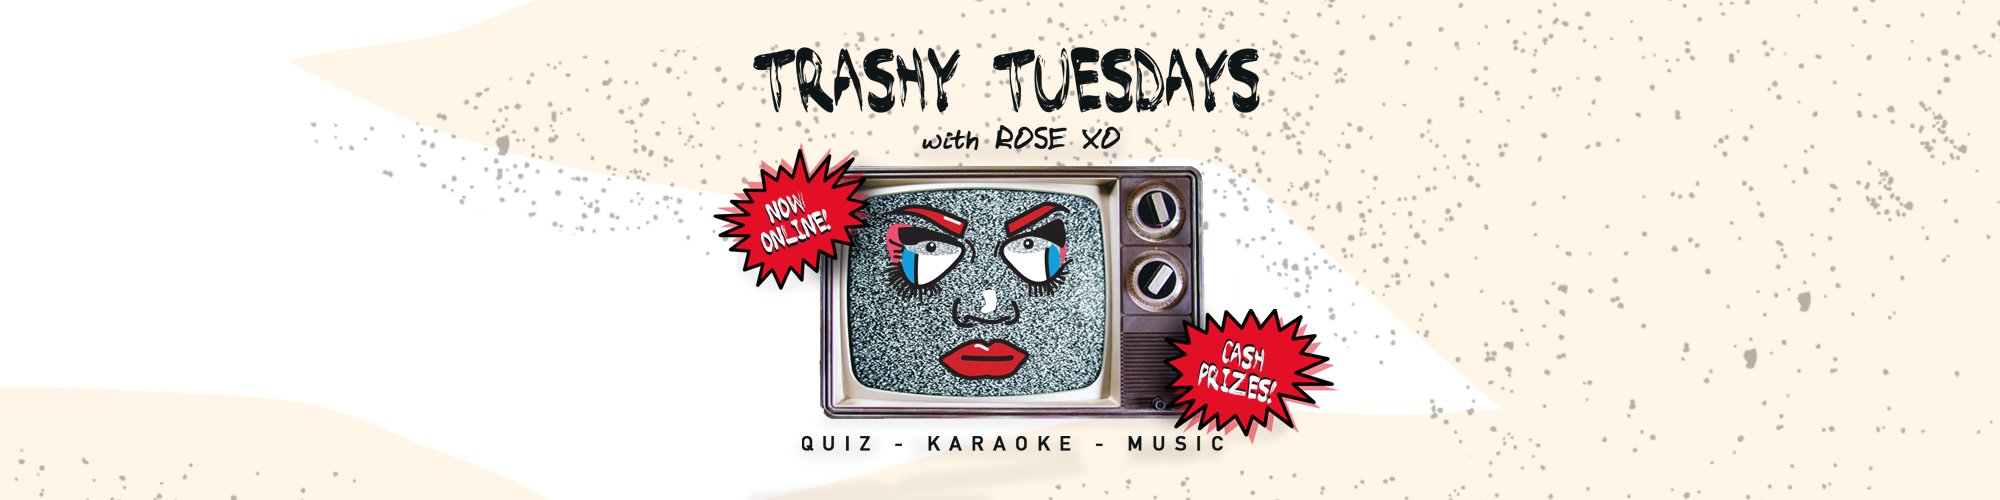 Trashy Tuesdays Online with ROSE XO